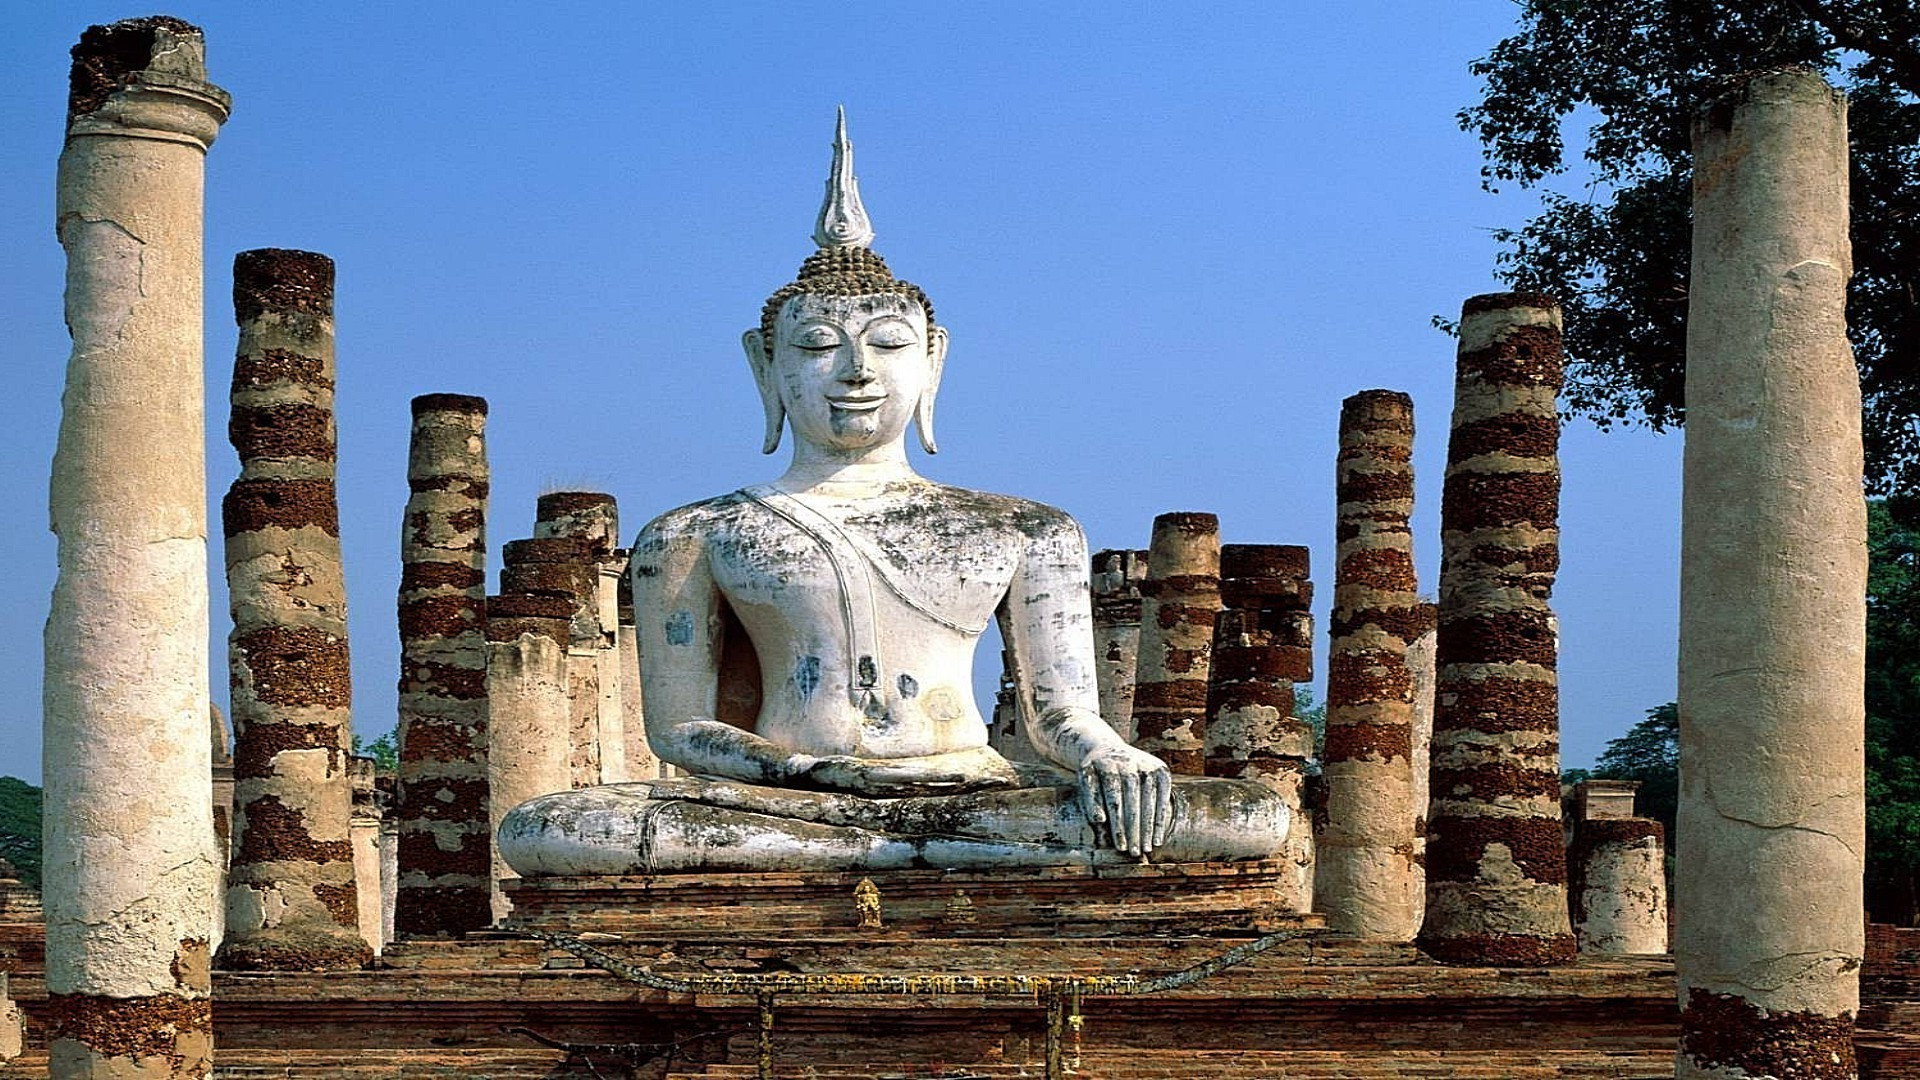 The Statue Of Buda Thailand Android Wallpapers For Free